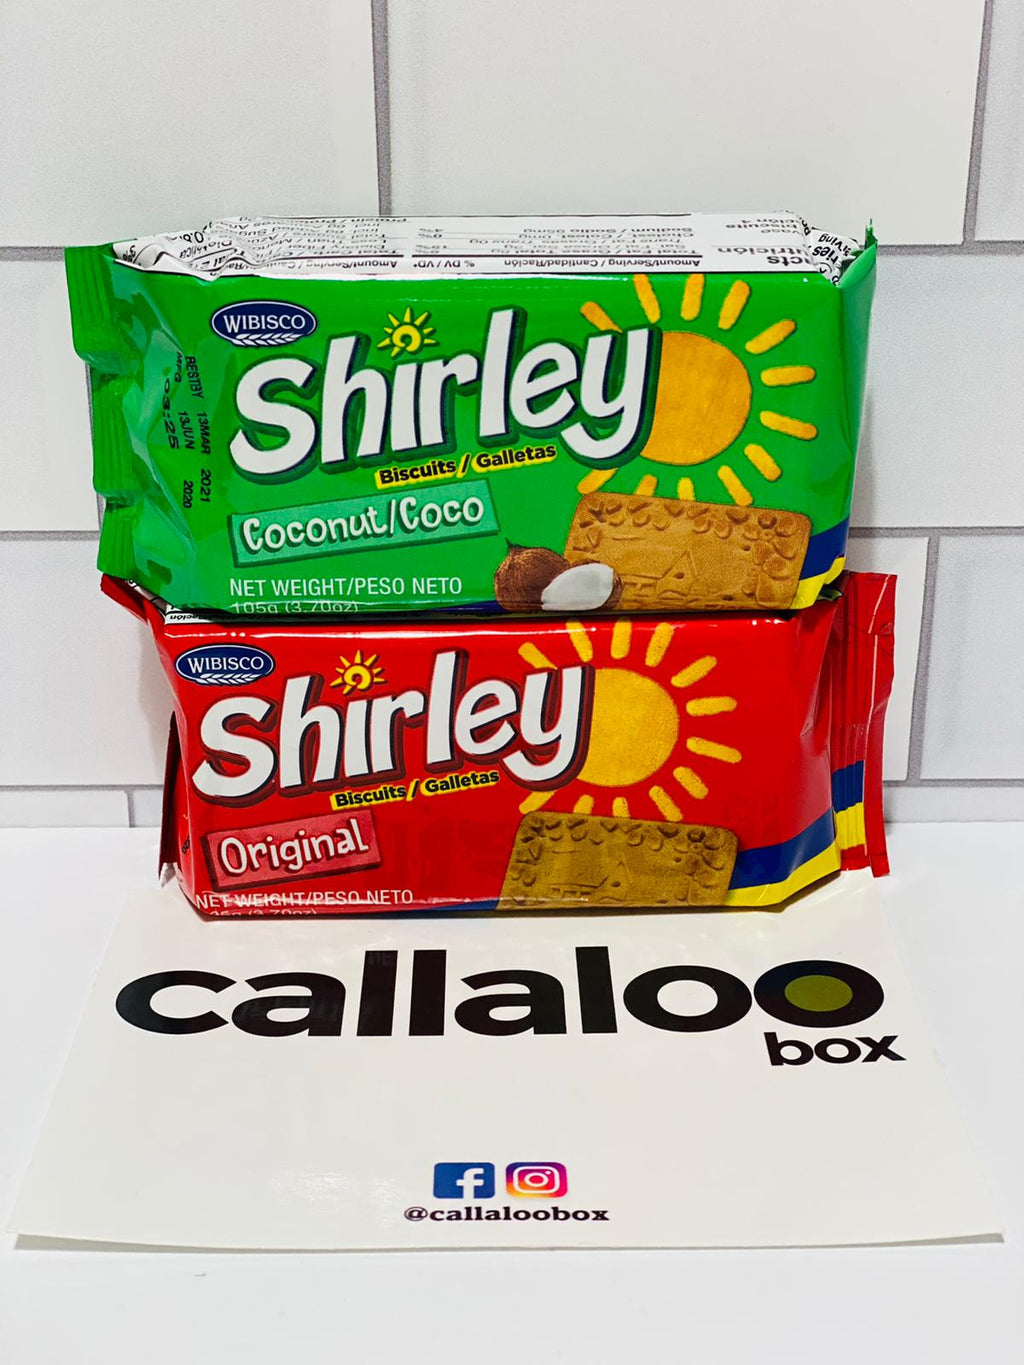 Callaloo Box Trinidad and Tobago Caribbean subscription box service Caribbean Online grocery_Shirley Biscuit_Coconut_Original_3.7oz_2 Pack